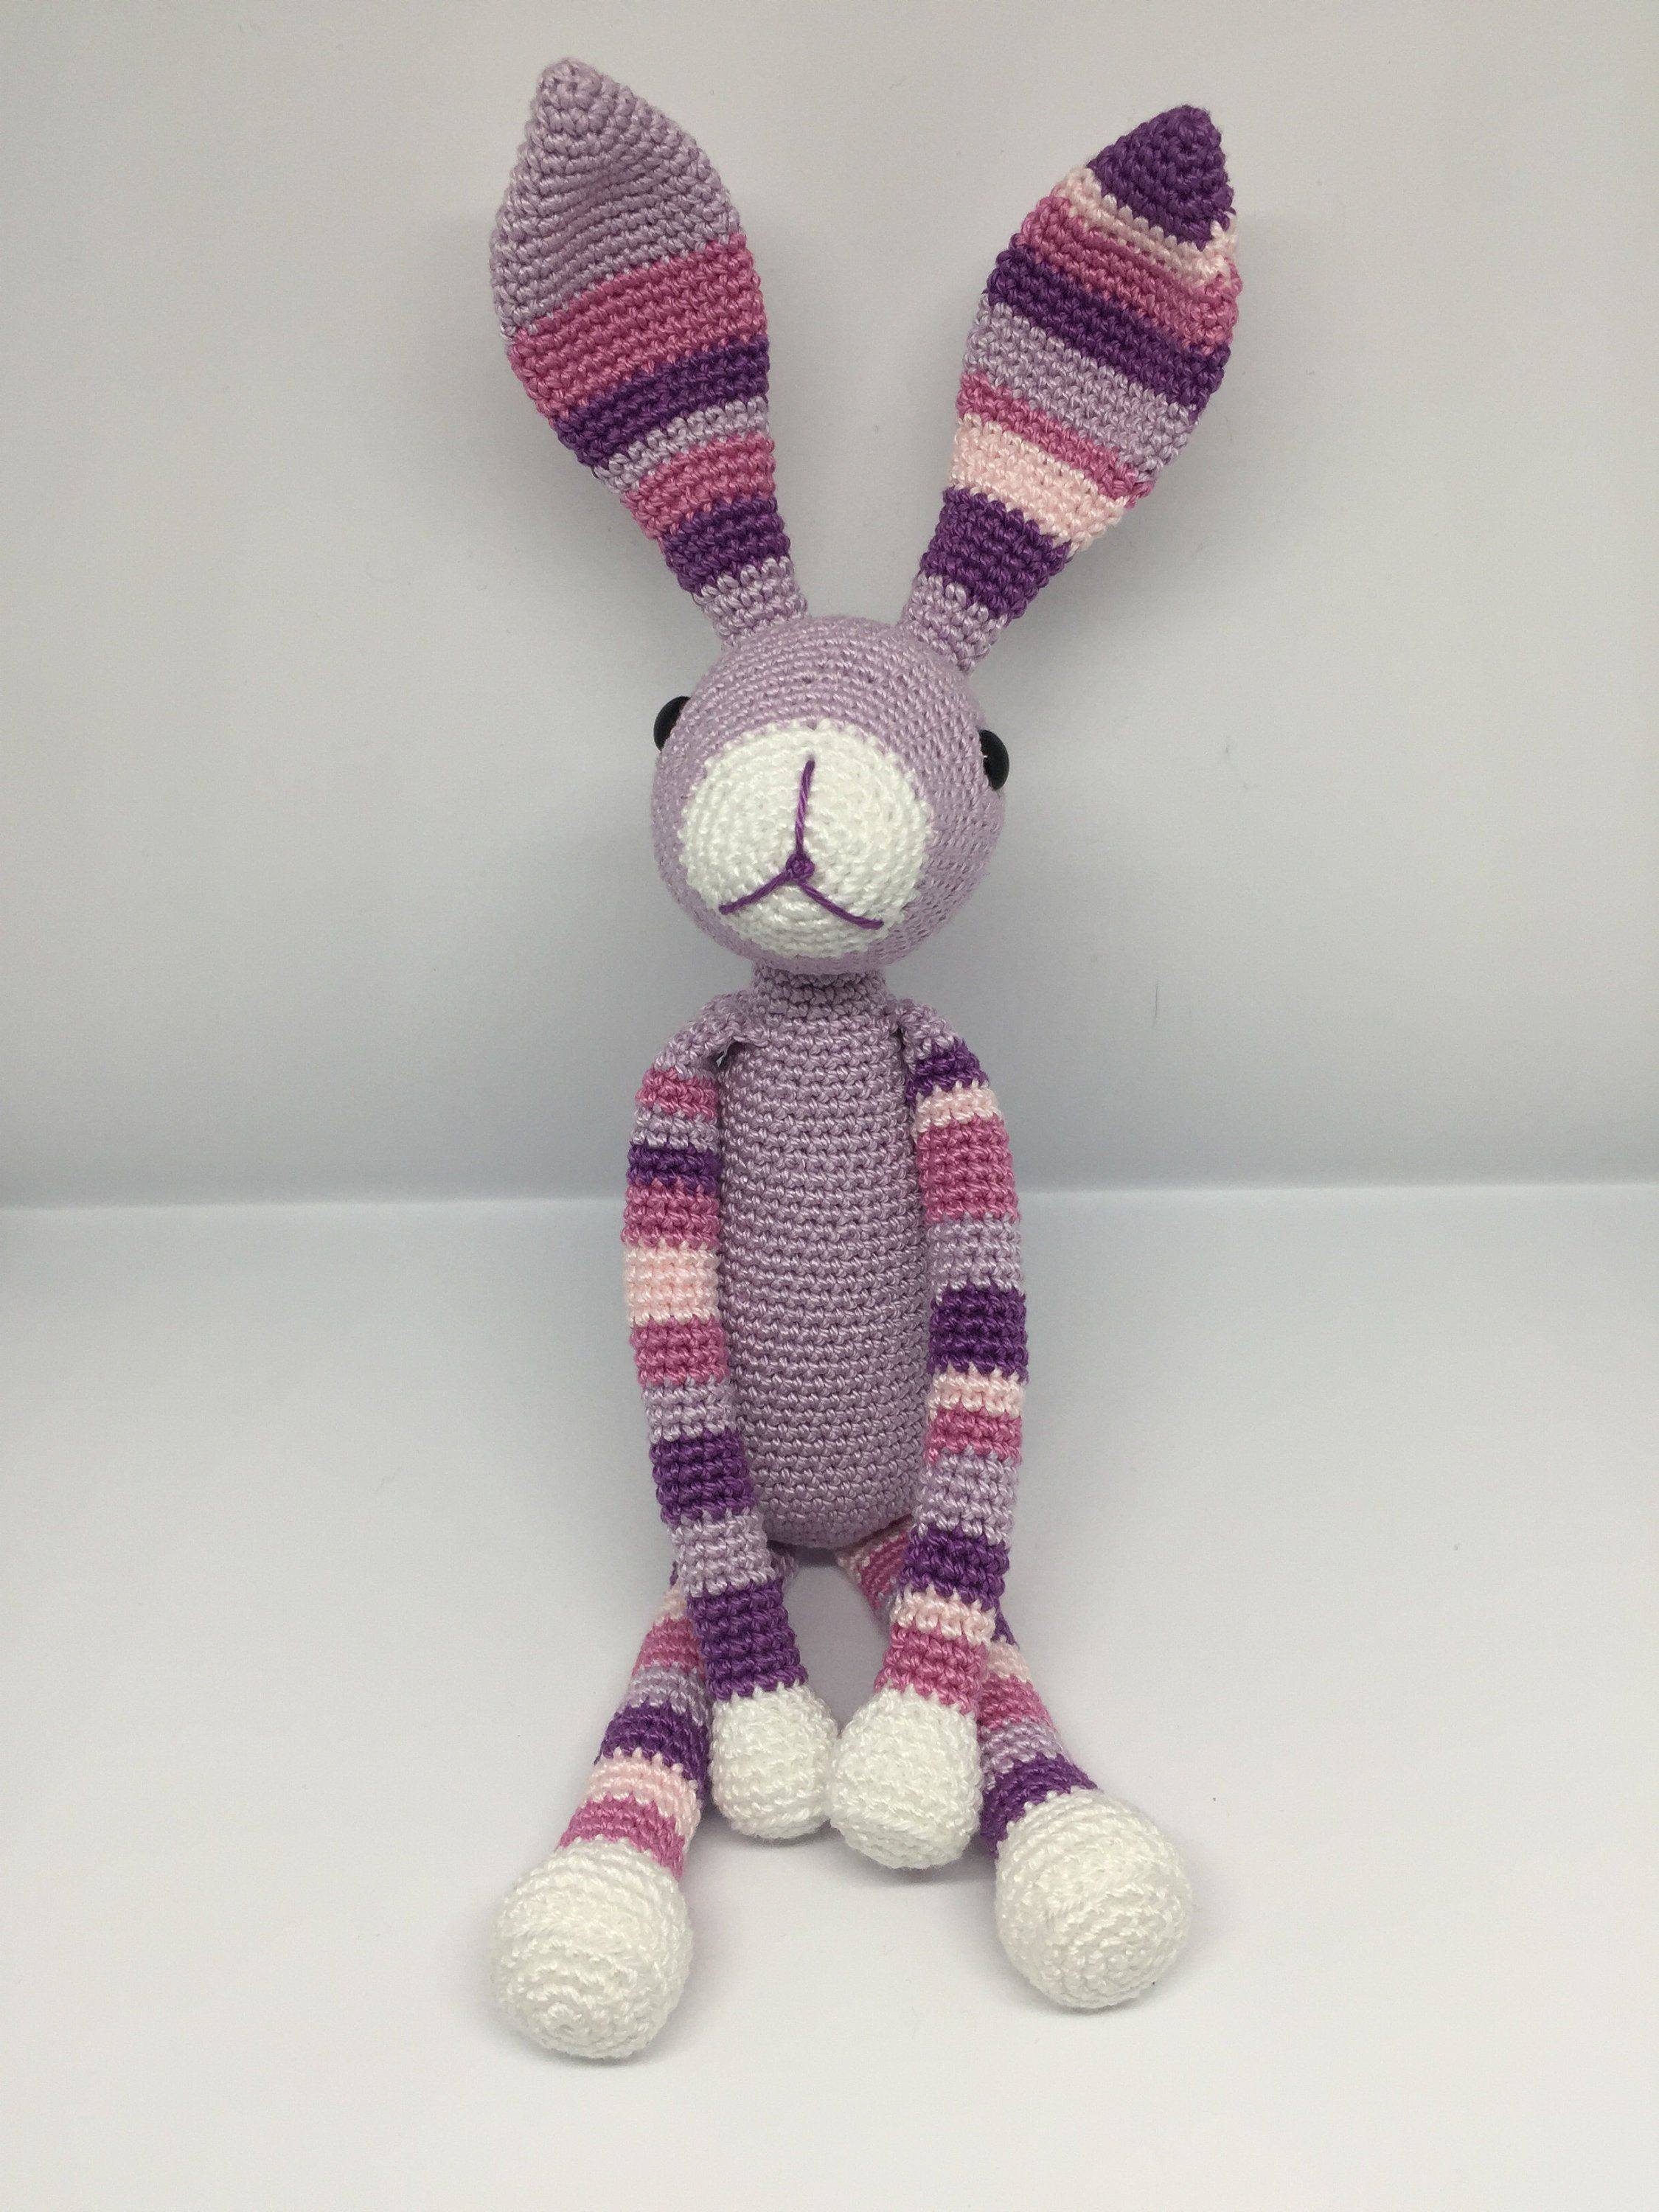 Crochet Pattern Amigurumi Bunny Rabbit Toy for sale online | eBay | 3000x2250